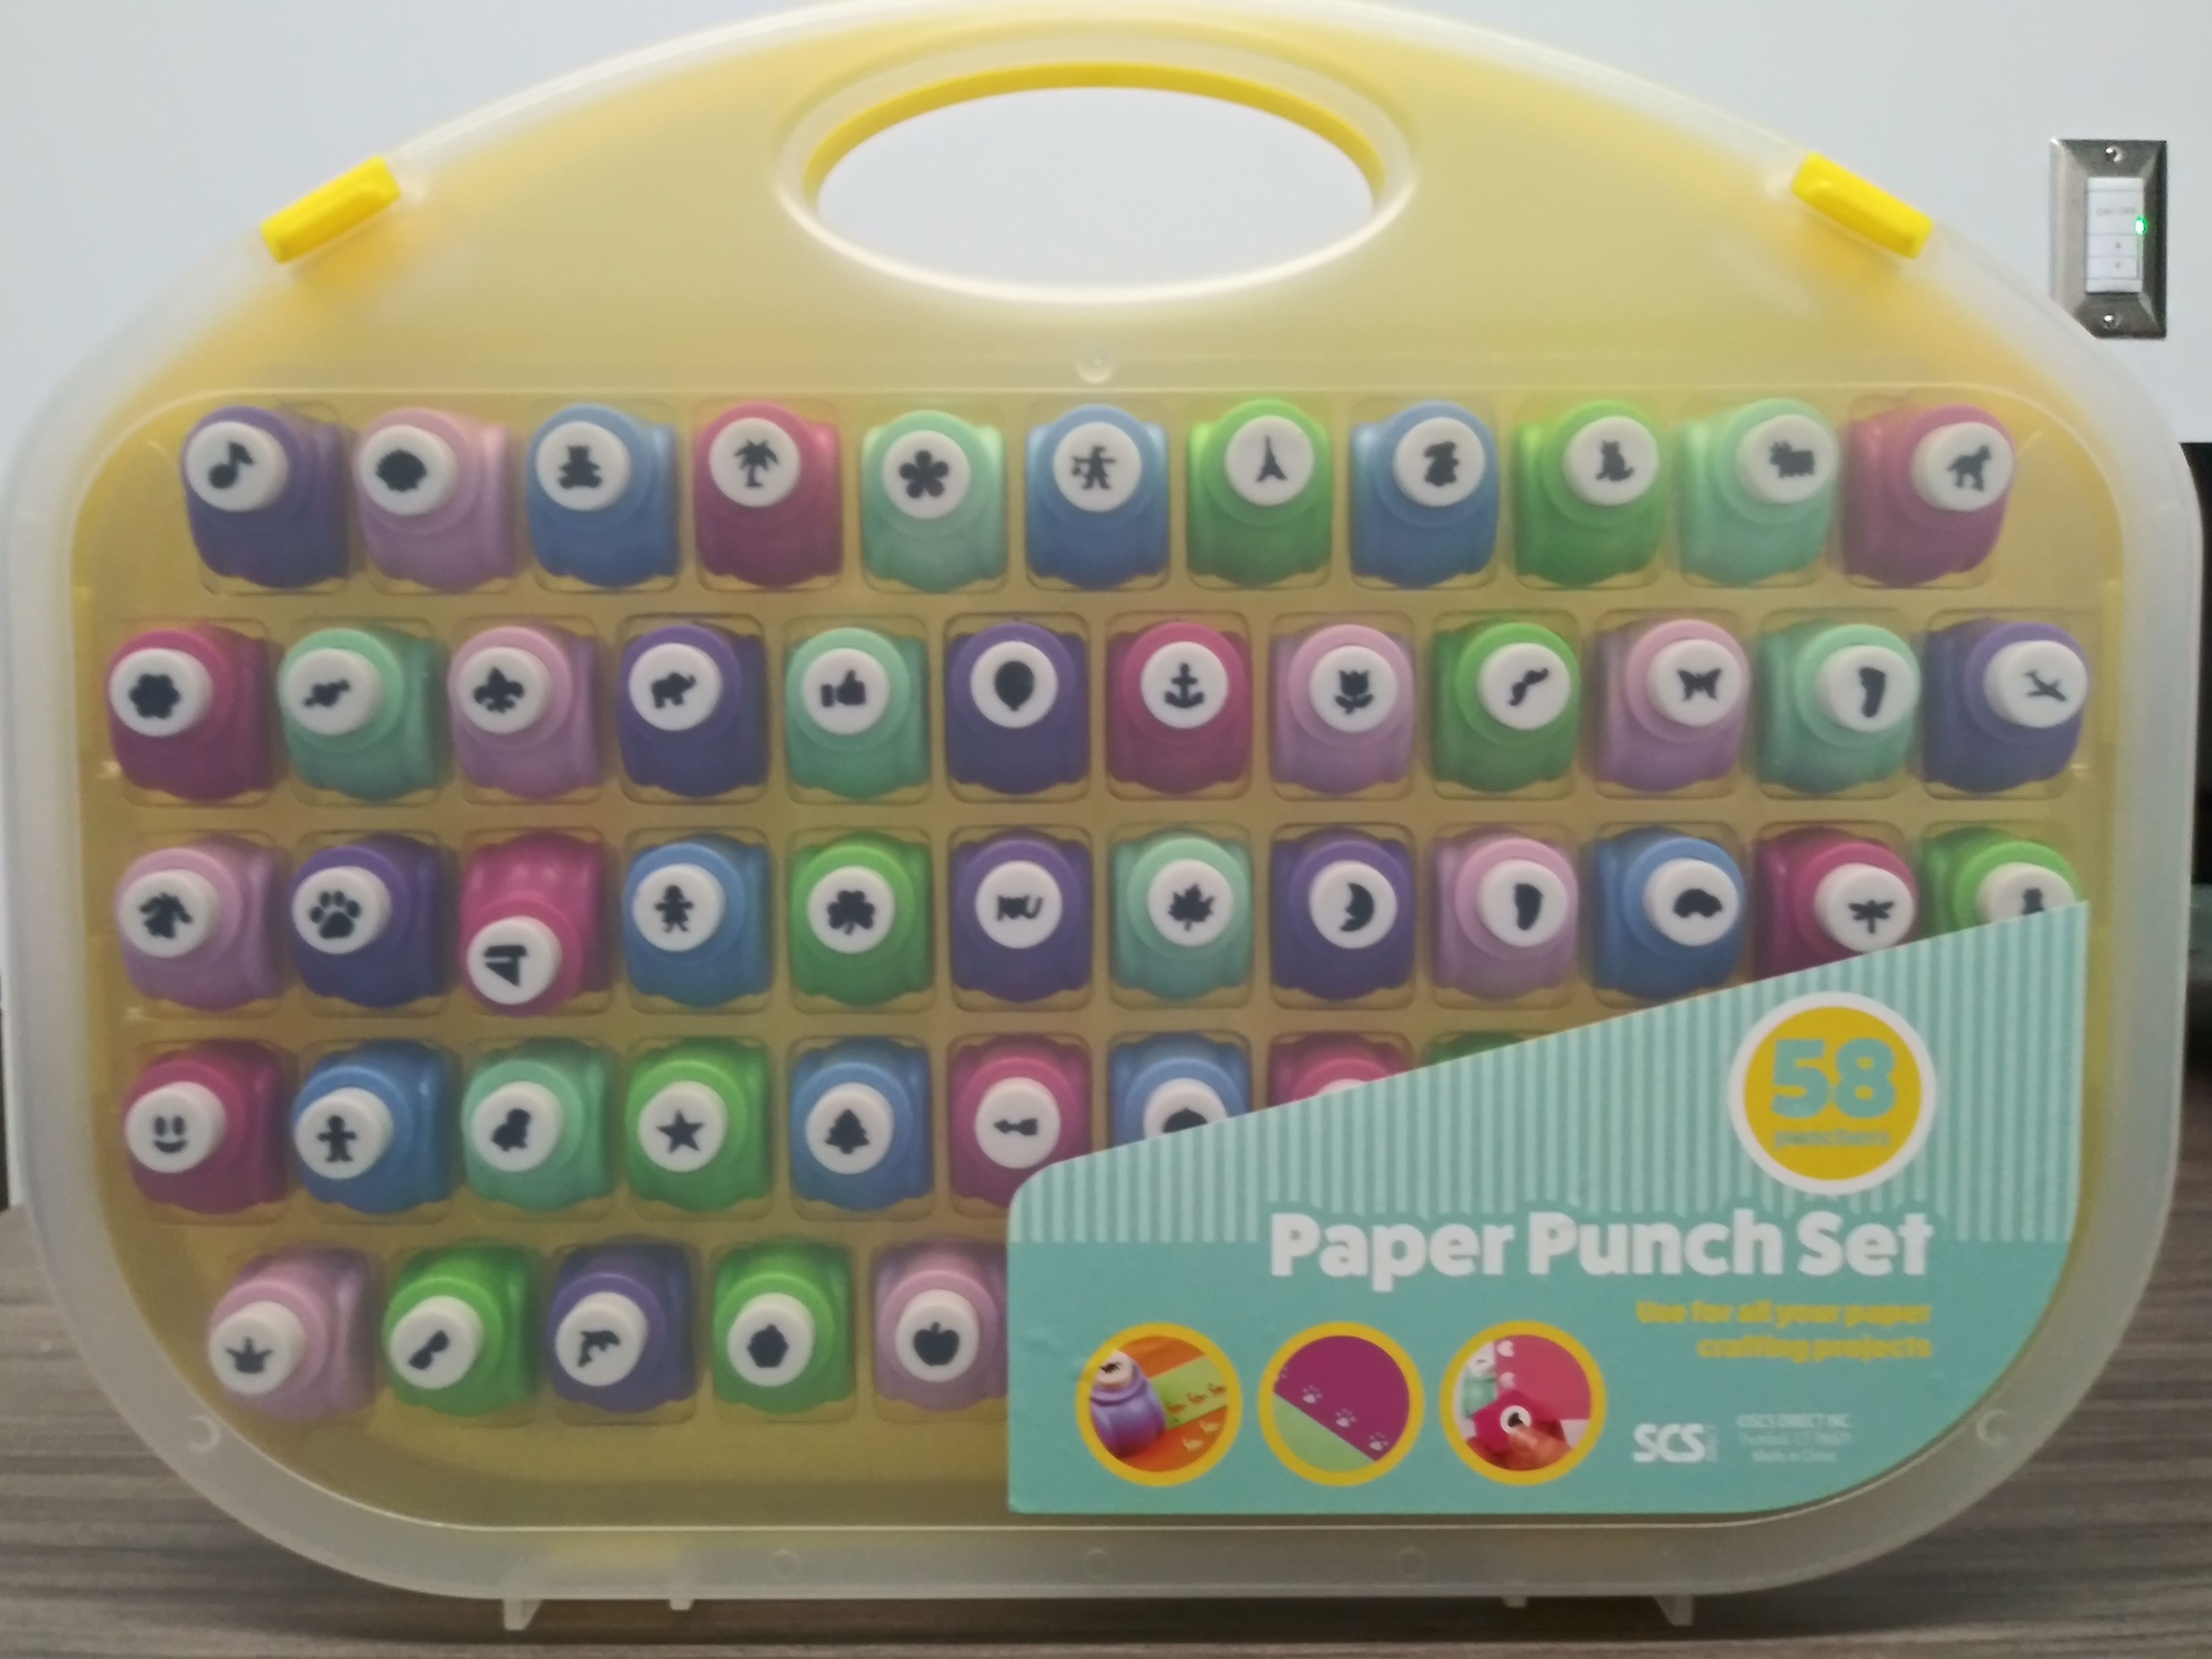 Paper punch set including 58 different punch designs